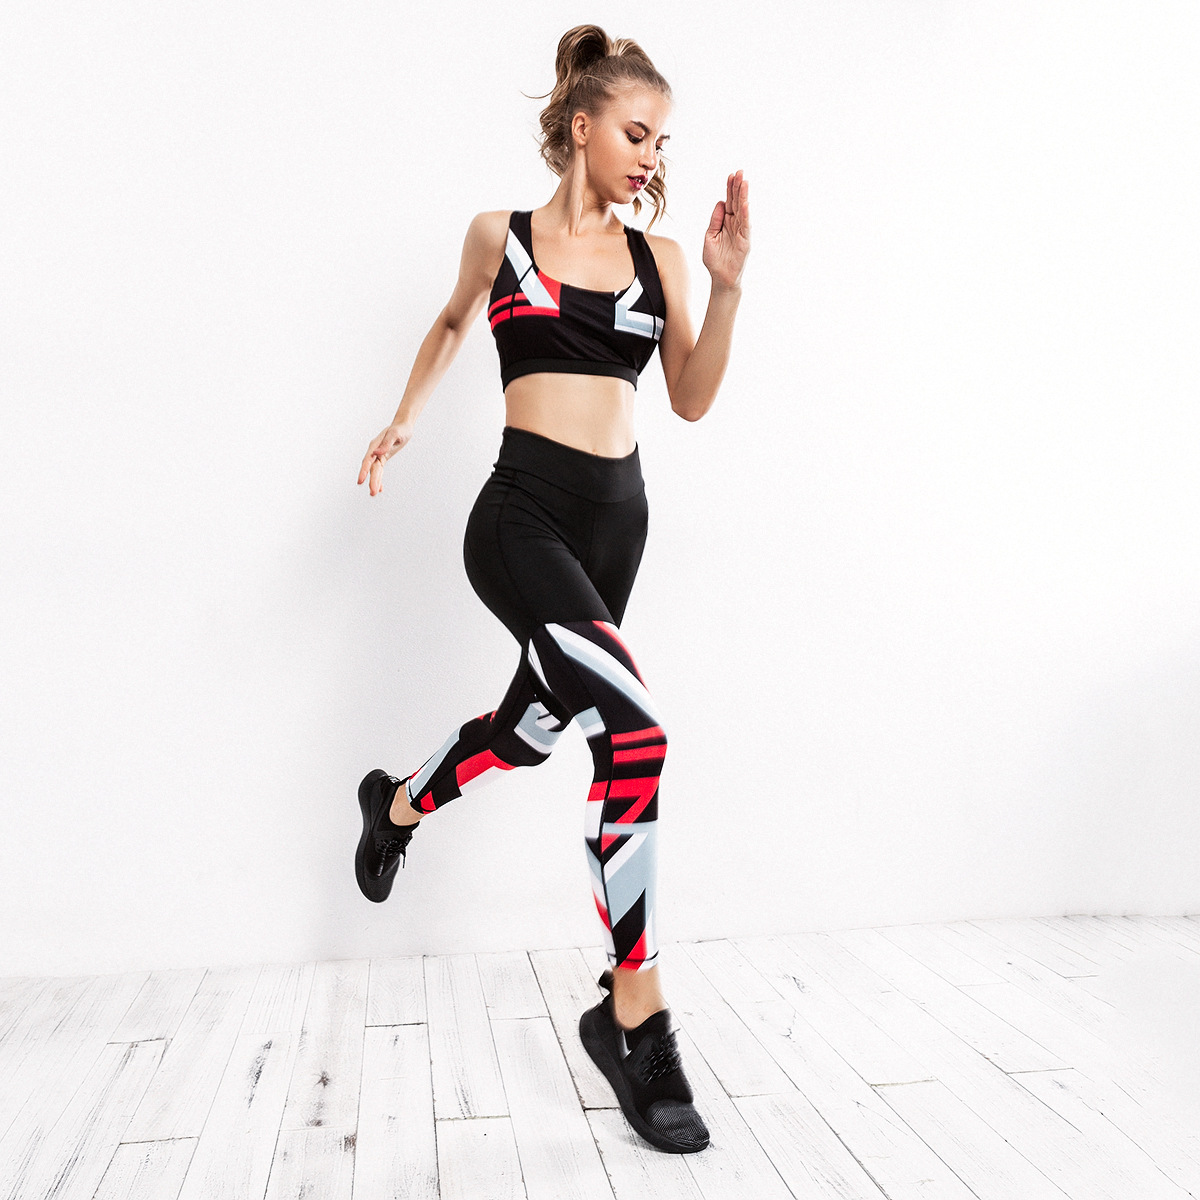 Adaptable 2018 New Running Long Pant Autumn Gym Fitness Clothing Suit Women Gym Tight Jumpsuits Sports Green Sprots Pant Leggings Running Pants Running